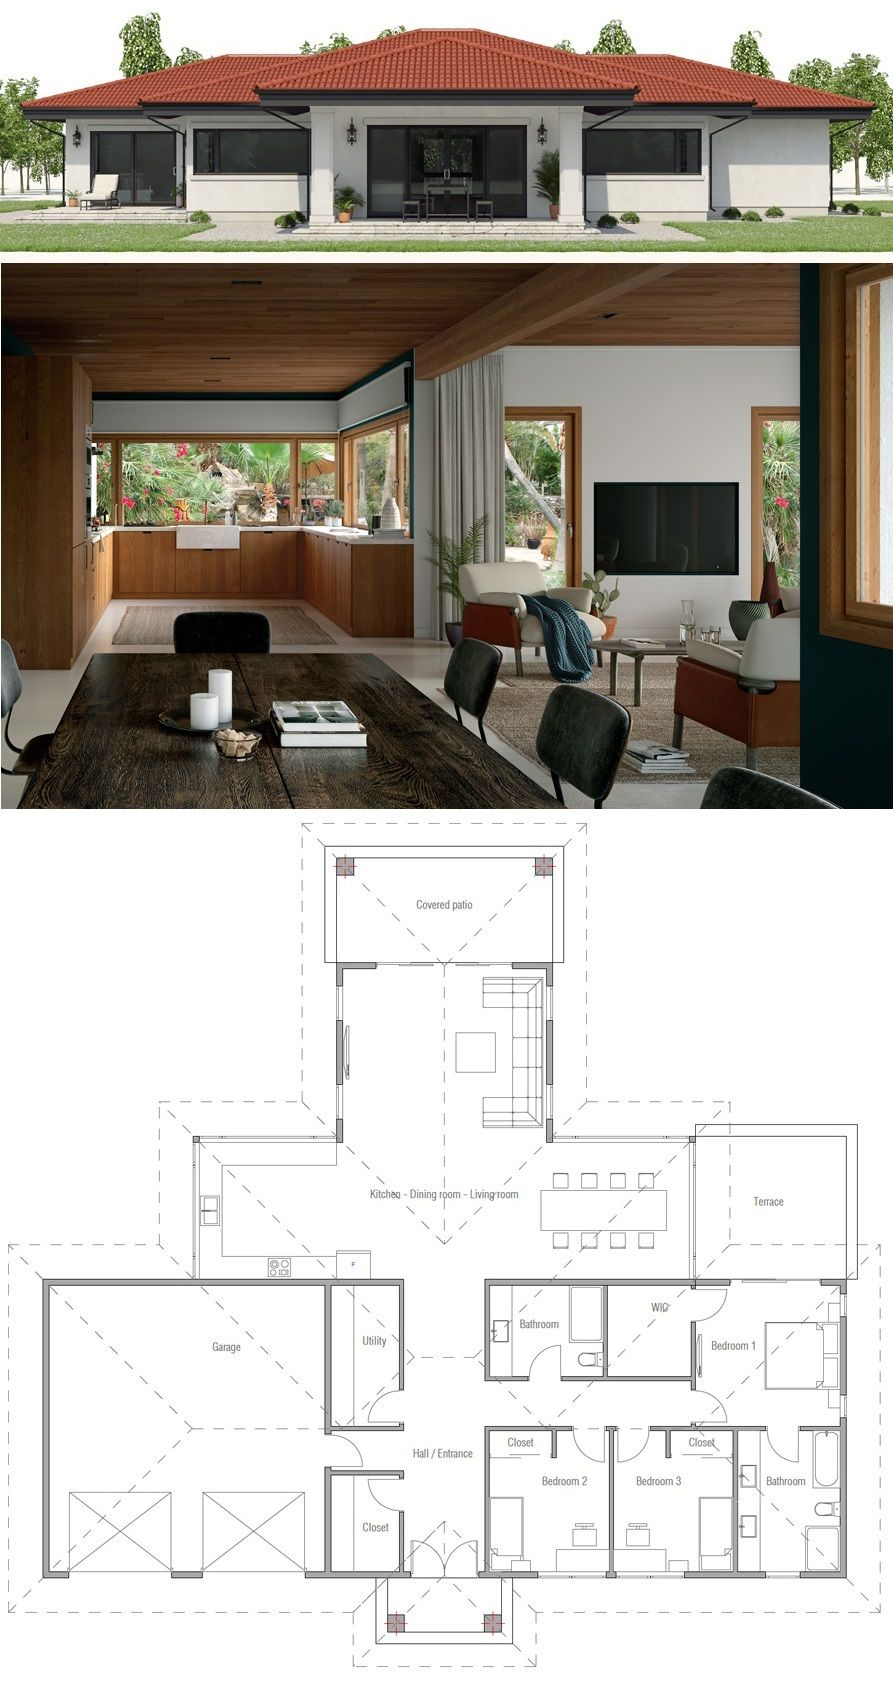 House Plan Ch561 Free House Plans House Construction Plan Beautiful House Plans